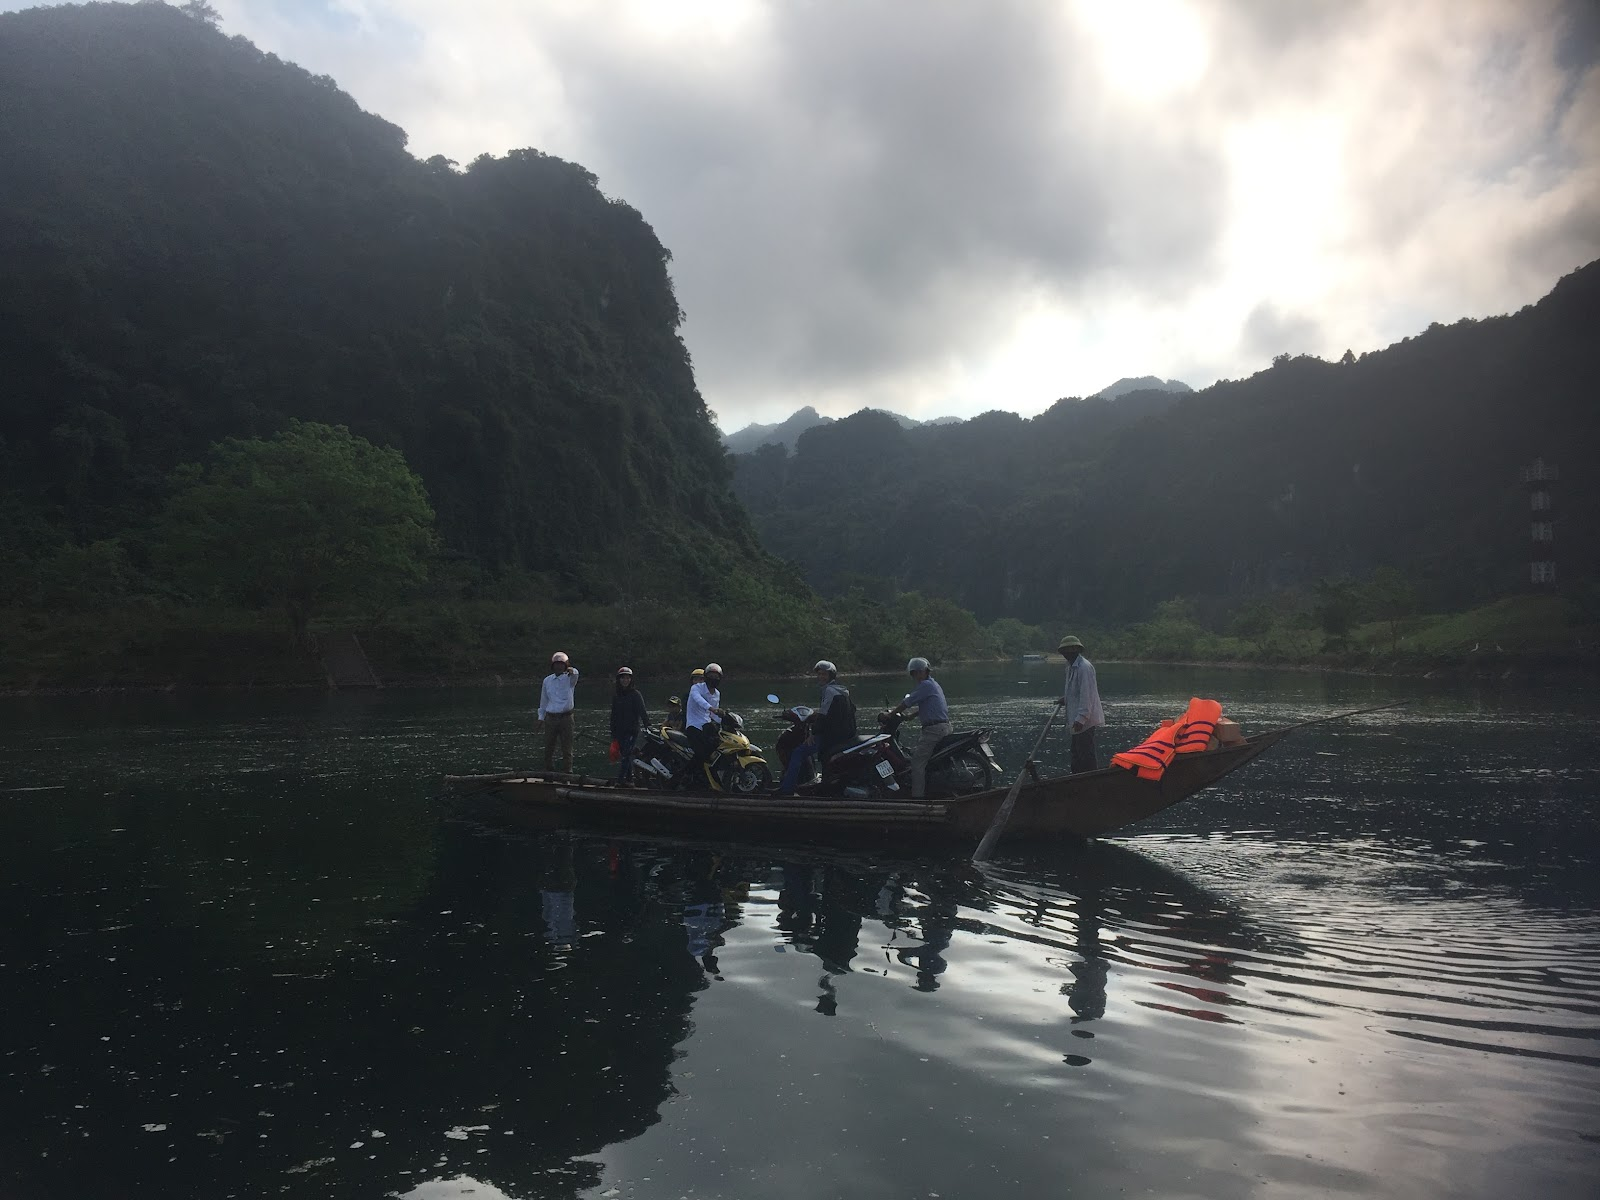 A motorcycle tour on a boat: Motobike routes at Phong Nha